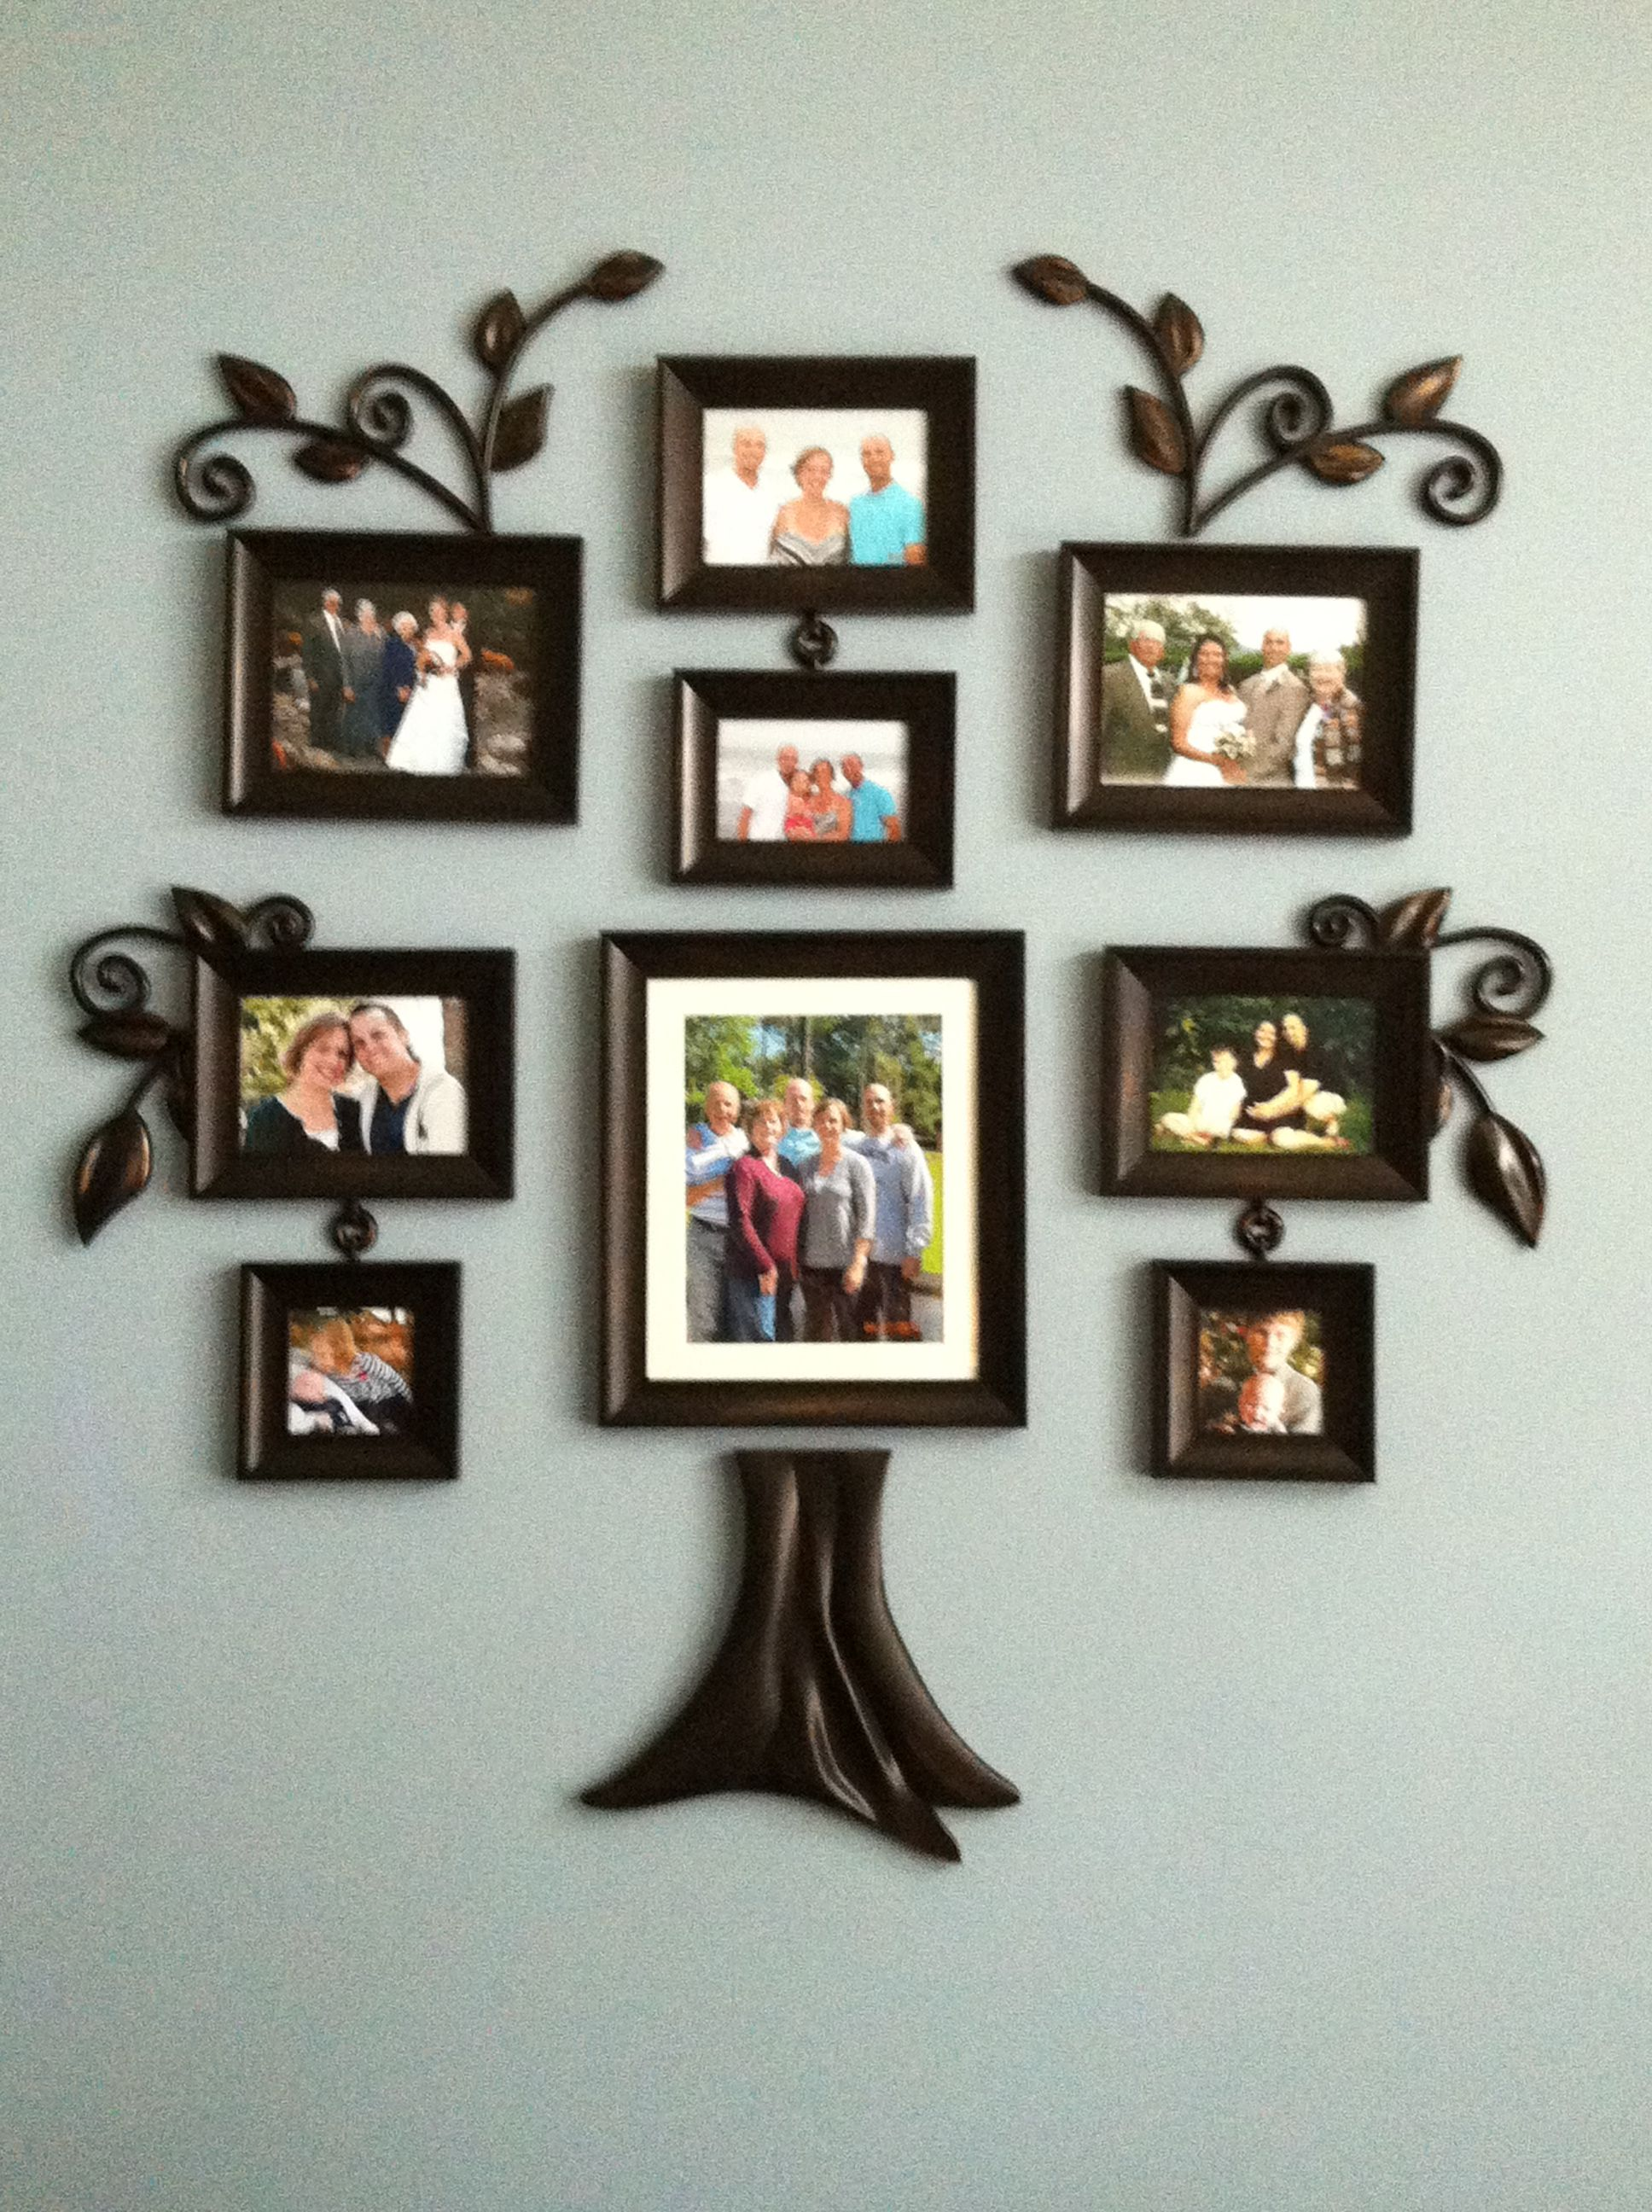 Family Tree Made Simple Supplies Bed Bath Beyond Family Tree Or A Simple Decal Sho Family Tree With Pictures Family Tree Picture Frames Family Tree Wall